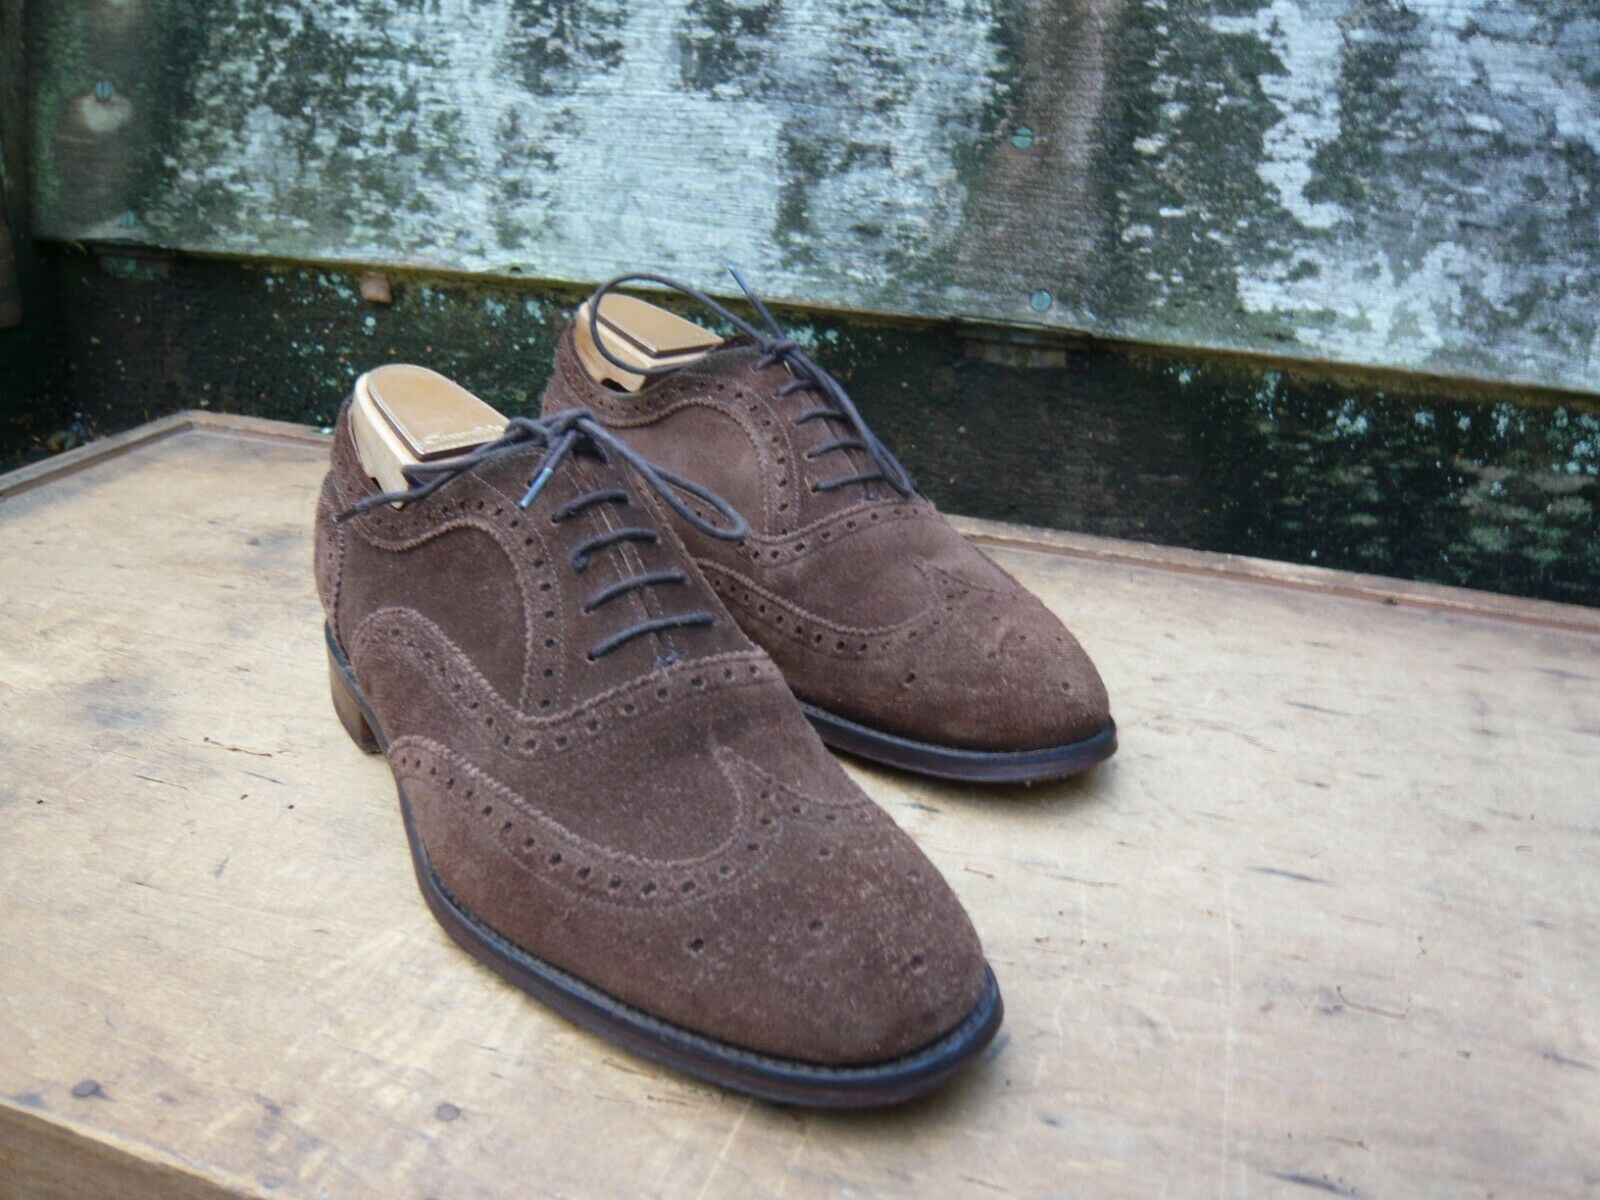 CHEANEY BROGUES – braun SUEDE - UK 6 – ARTHUR – EXCELLENT CONDITION